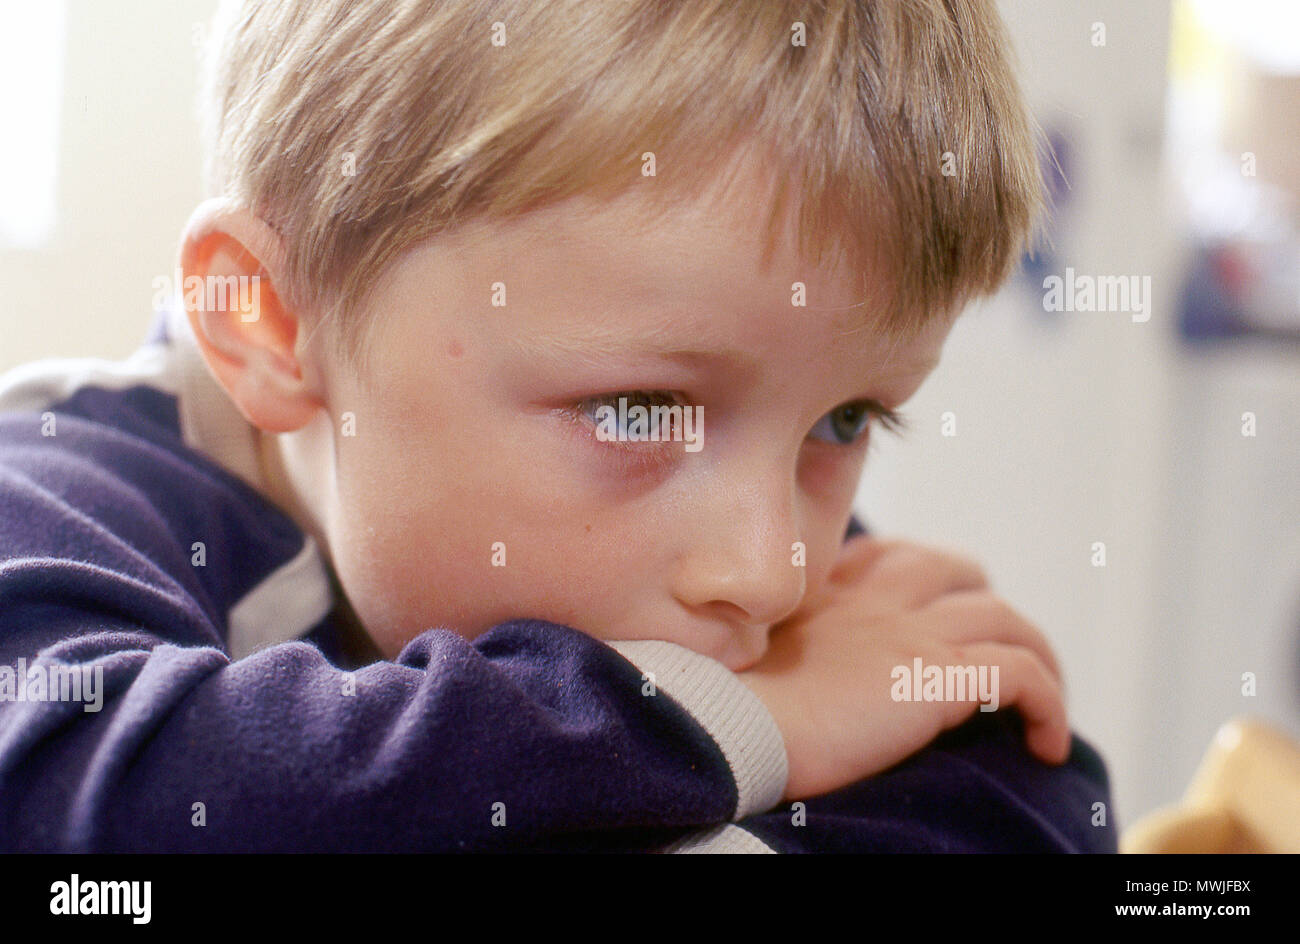 Boy aged four years old gazing into space - Stock Image